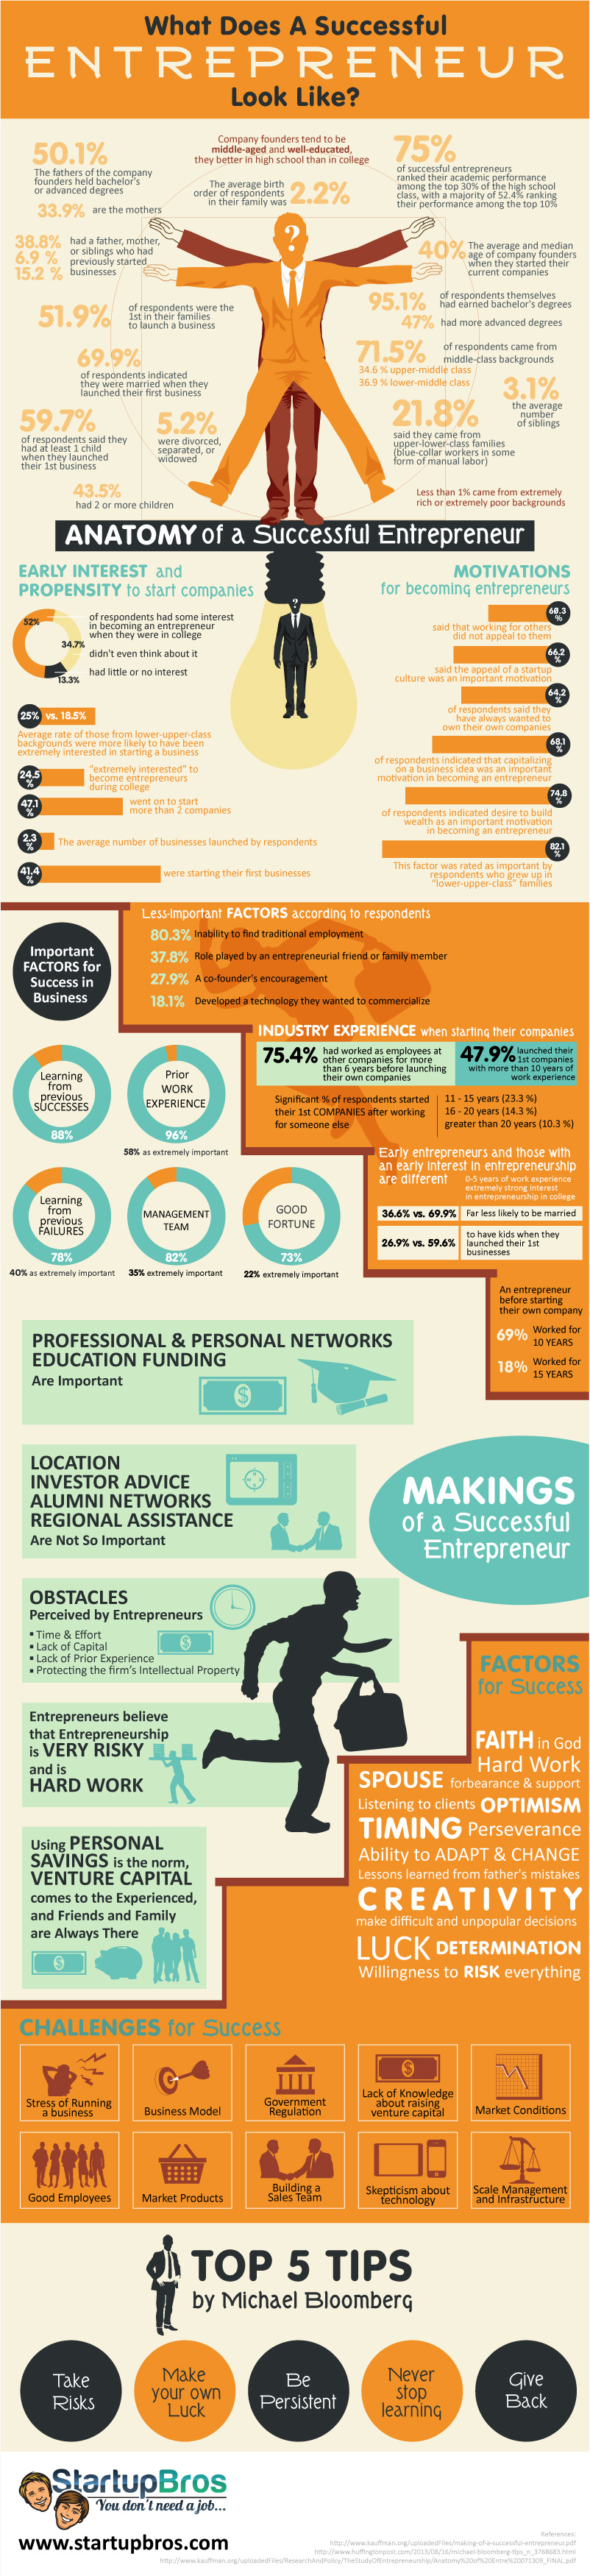 Infographic: What Makes A Successful Entrepreneur? Shocking Facts & Stats – StartupBros